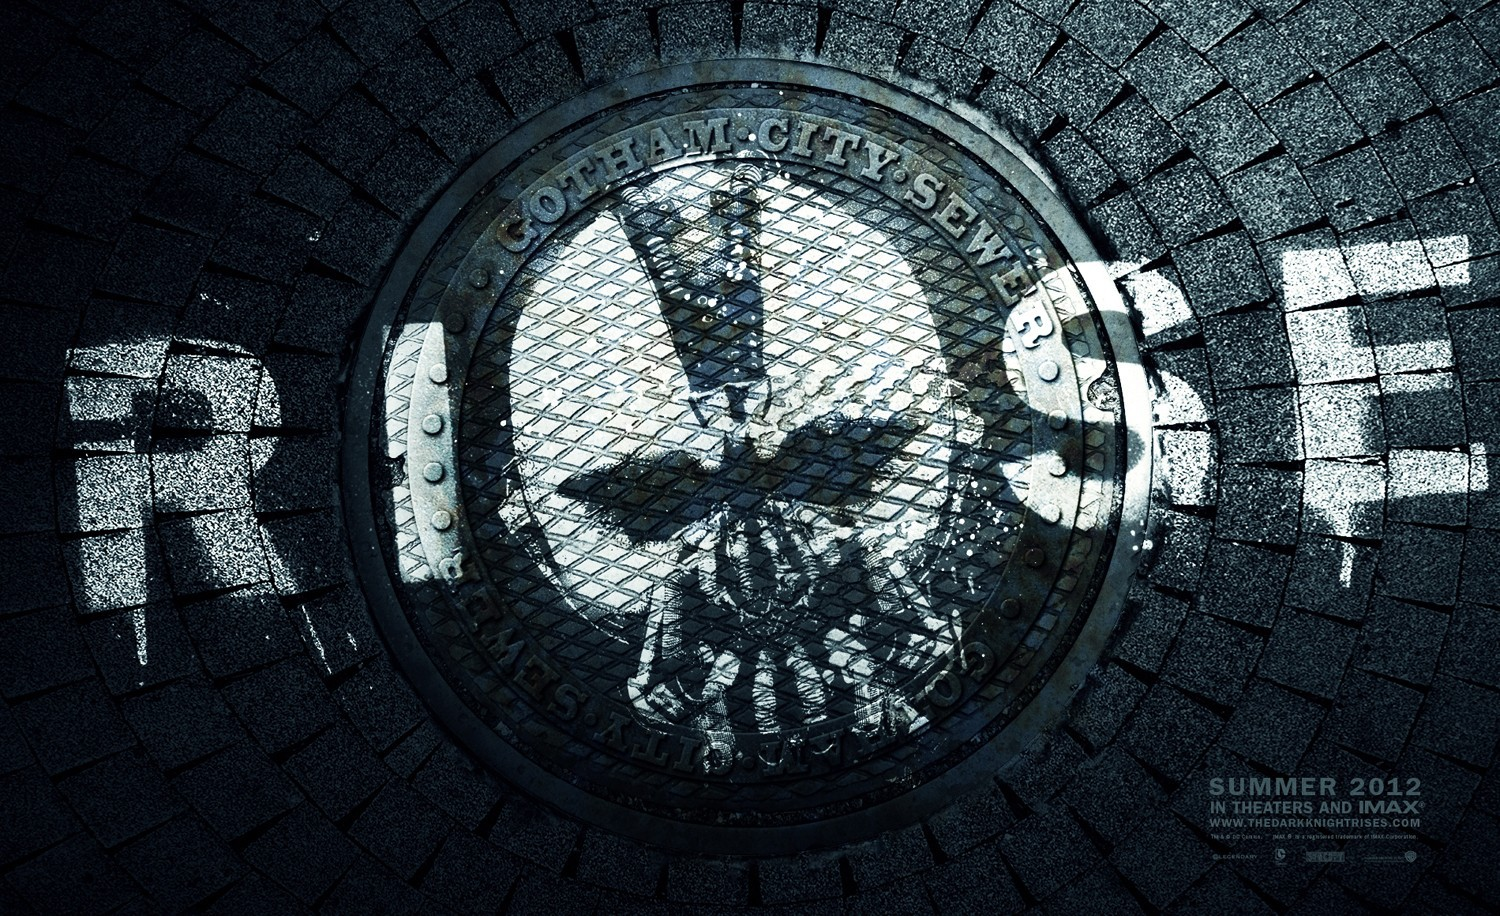 the-dark-knight-rises-bane-propaganda-movie-banner.jpg